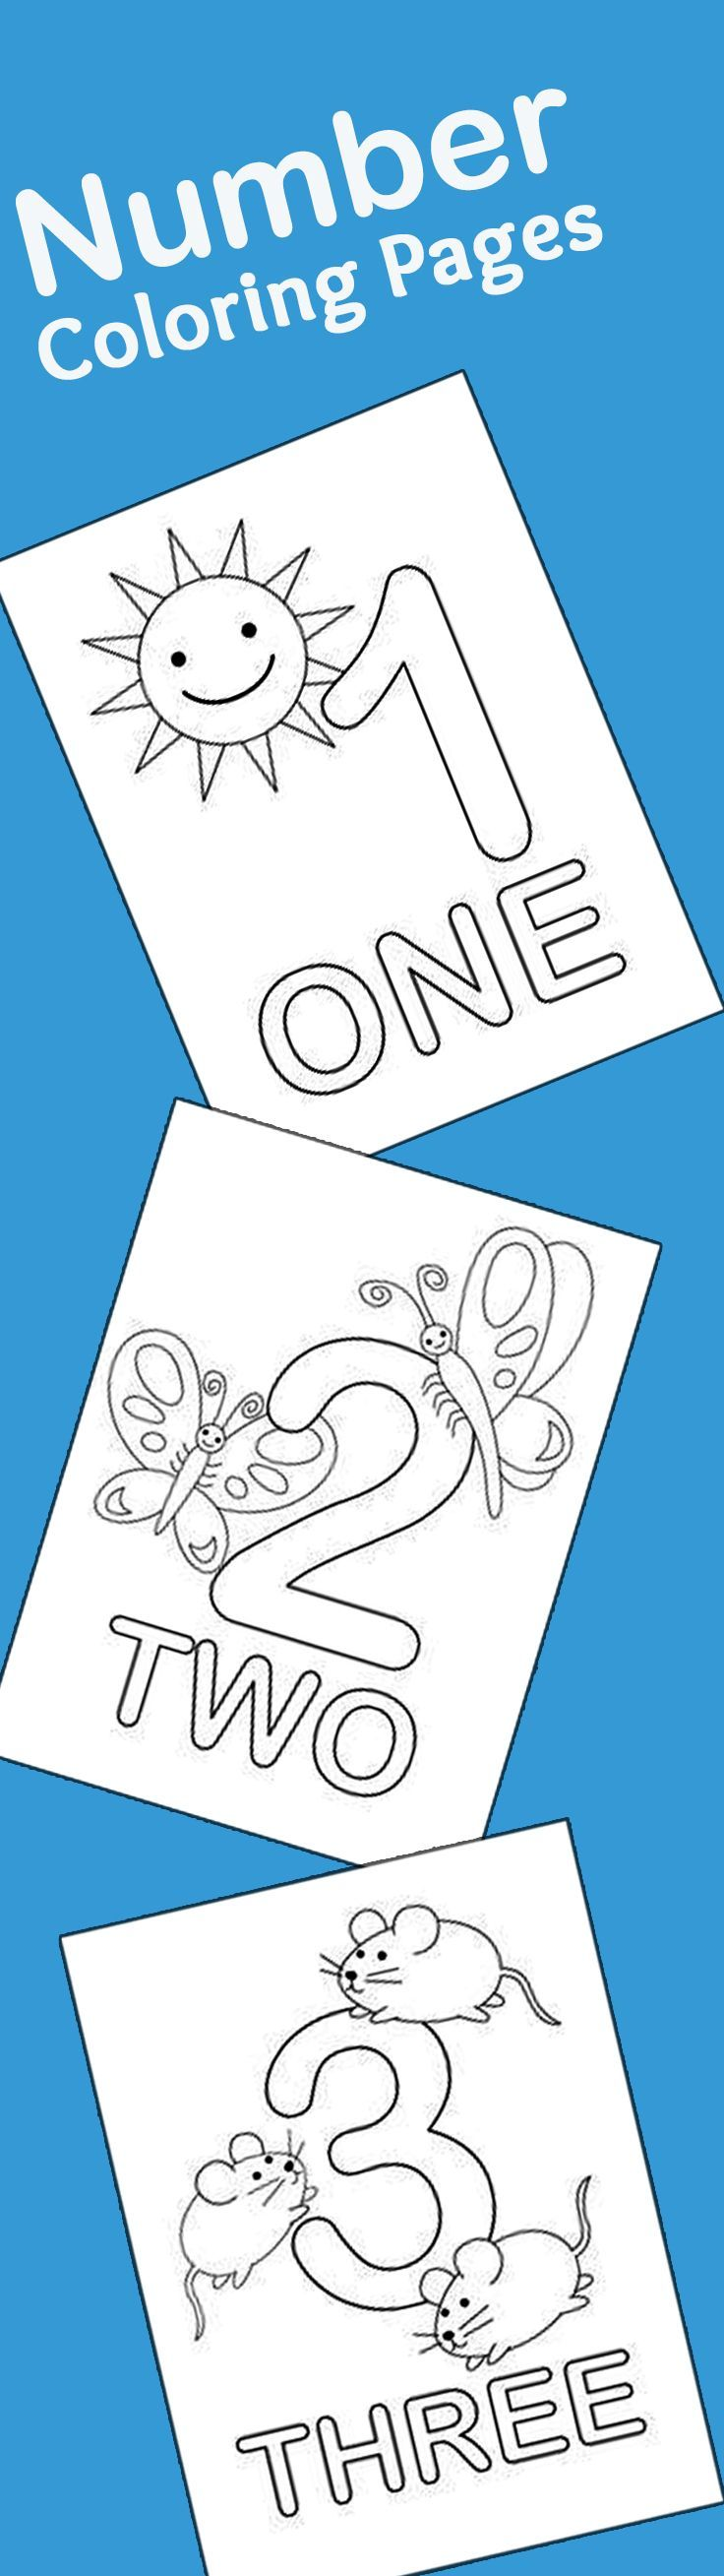 10 easy to learn number coloring pages for your little ones this is a list